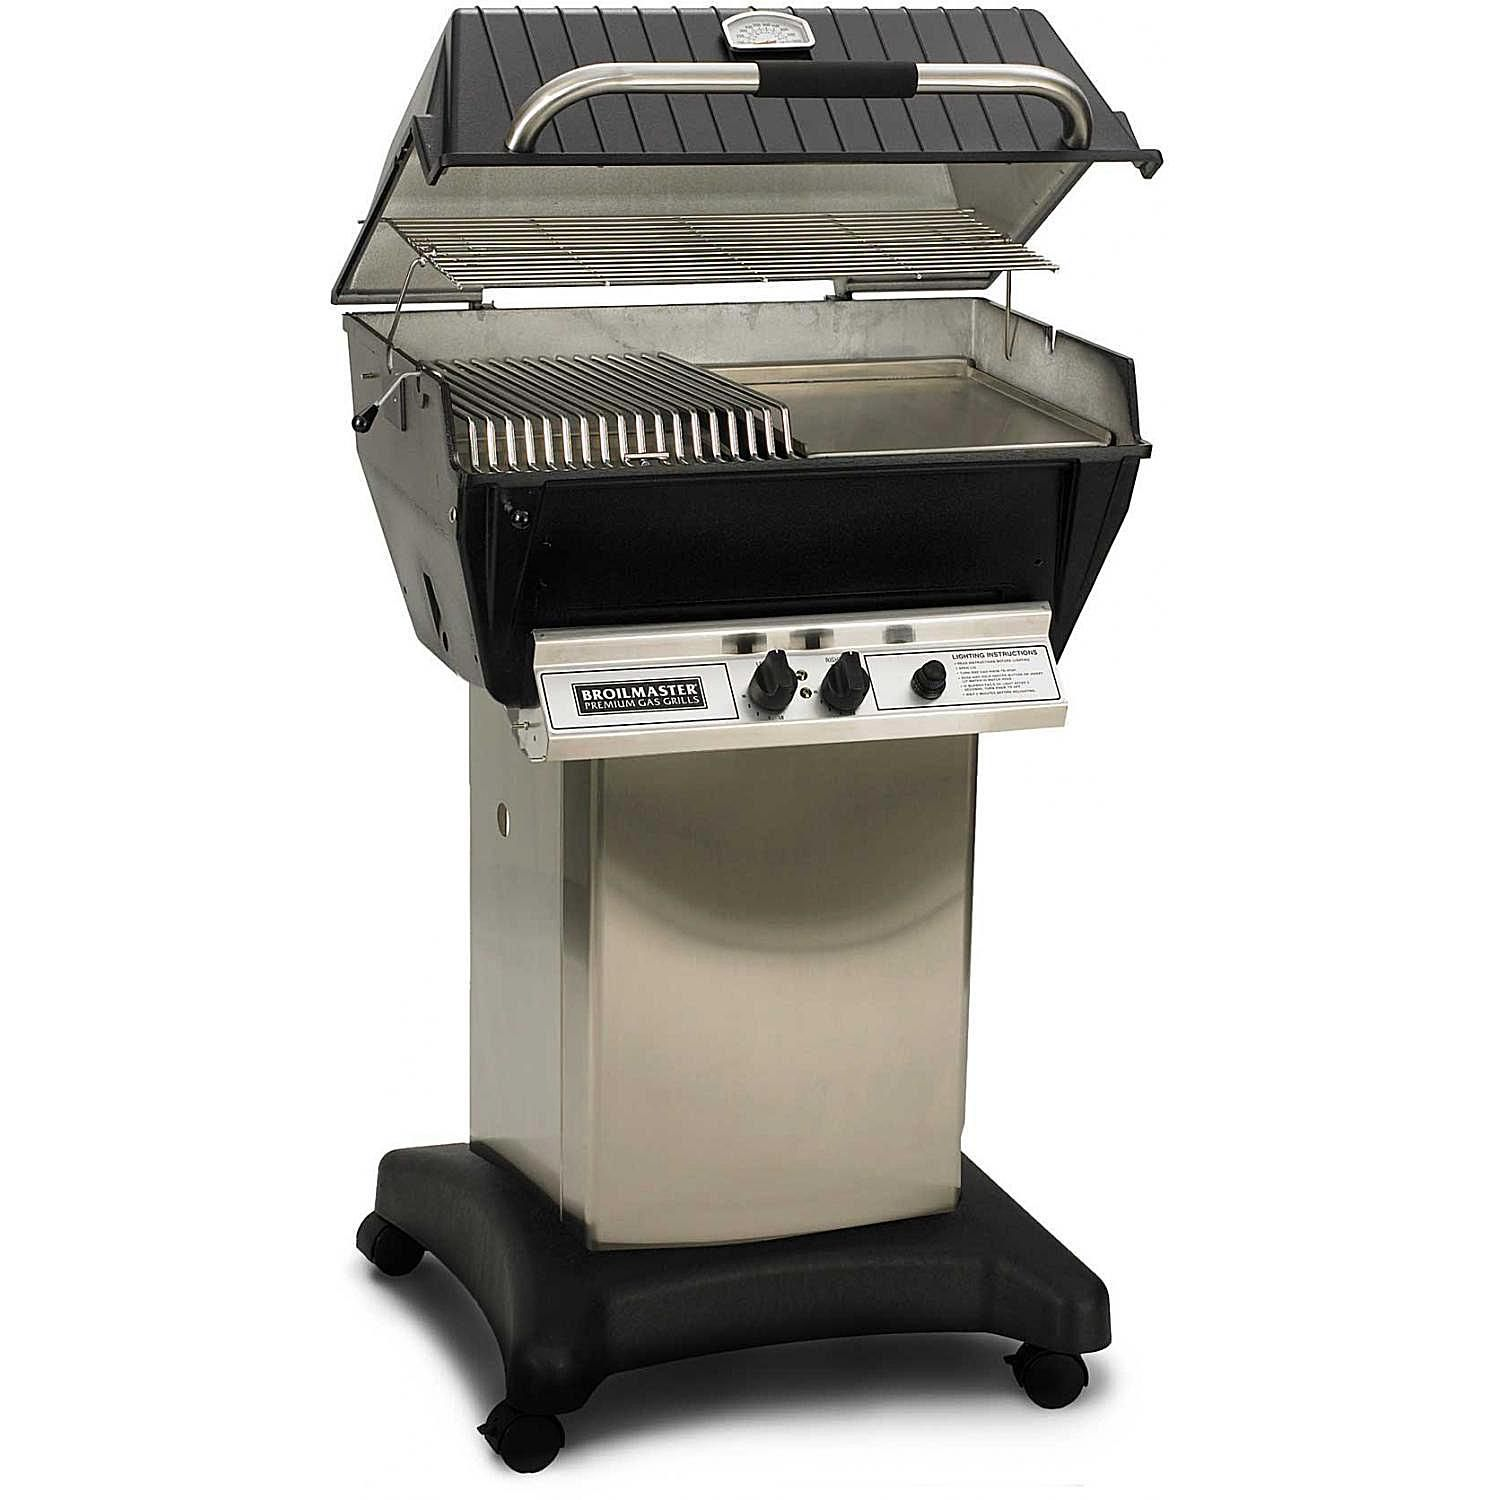 Evo Professional Flattop Grill Review